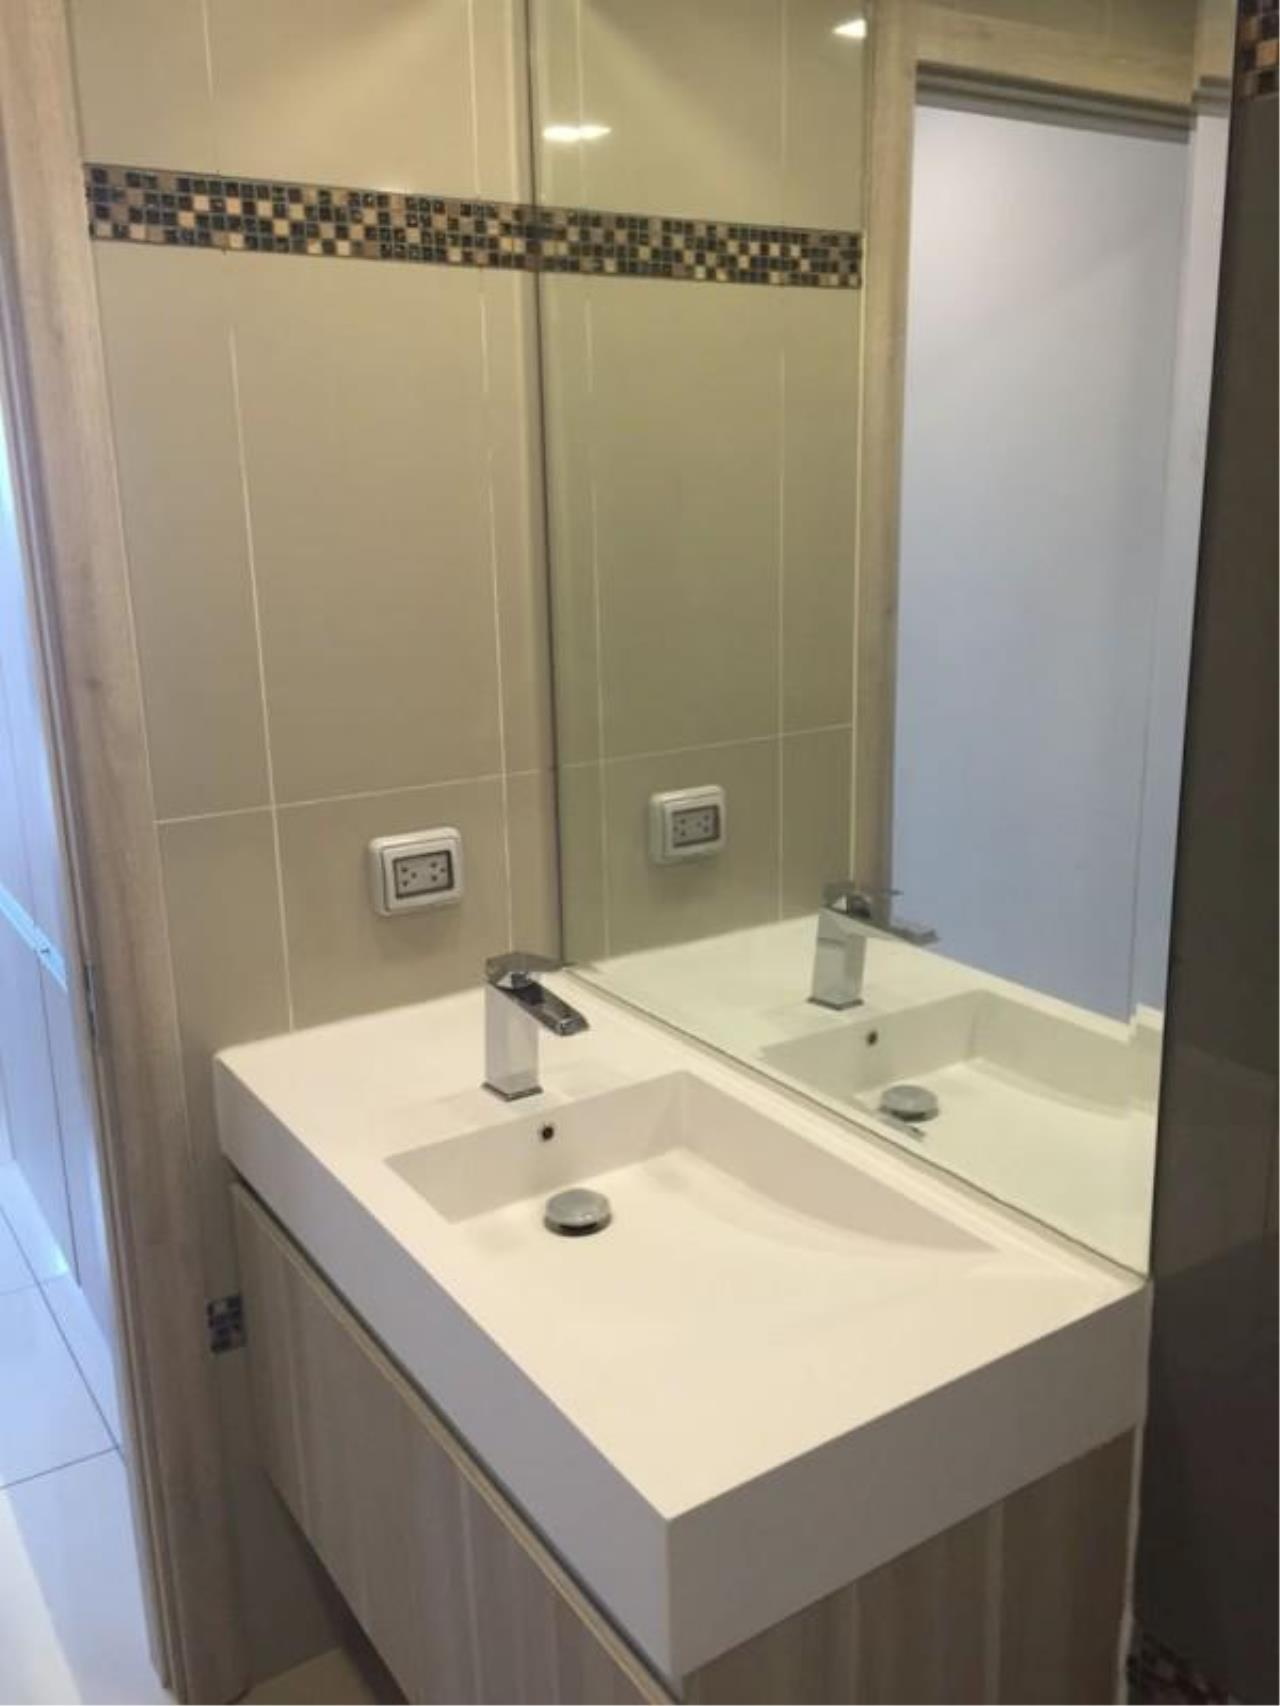 RE/MAX Town & Country Property Agency's 1 bedroom condo for sale or rent 6